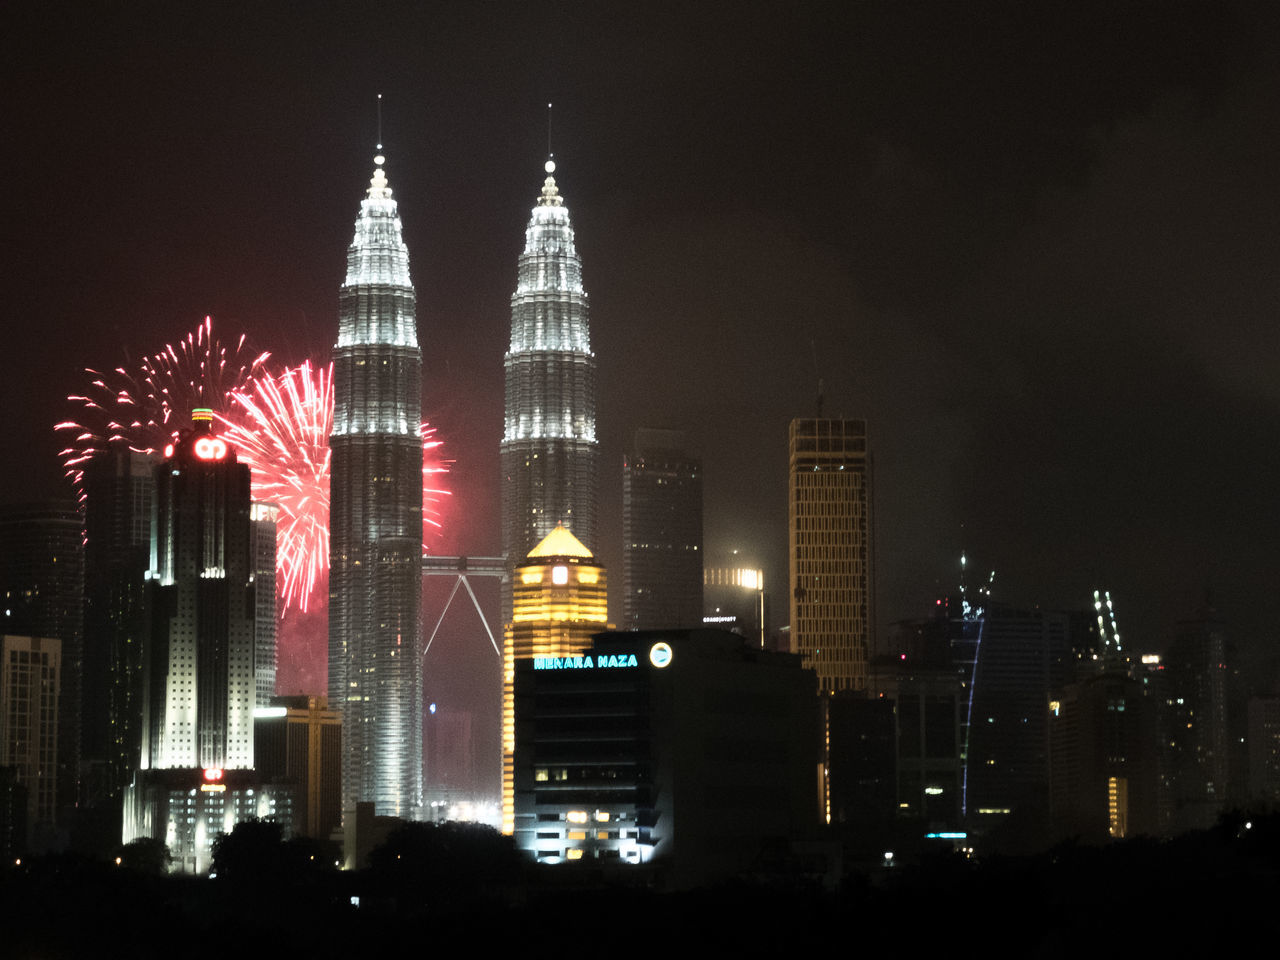 architecture, building exterior, illuminated, built structure, night, tall - high, travel destinations, skyscraper, modern, city, sky, no people, outdoors, low angle view, cityscape